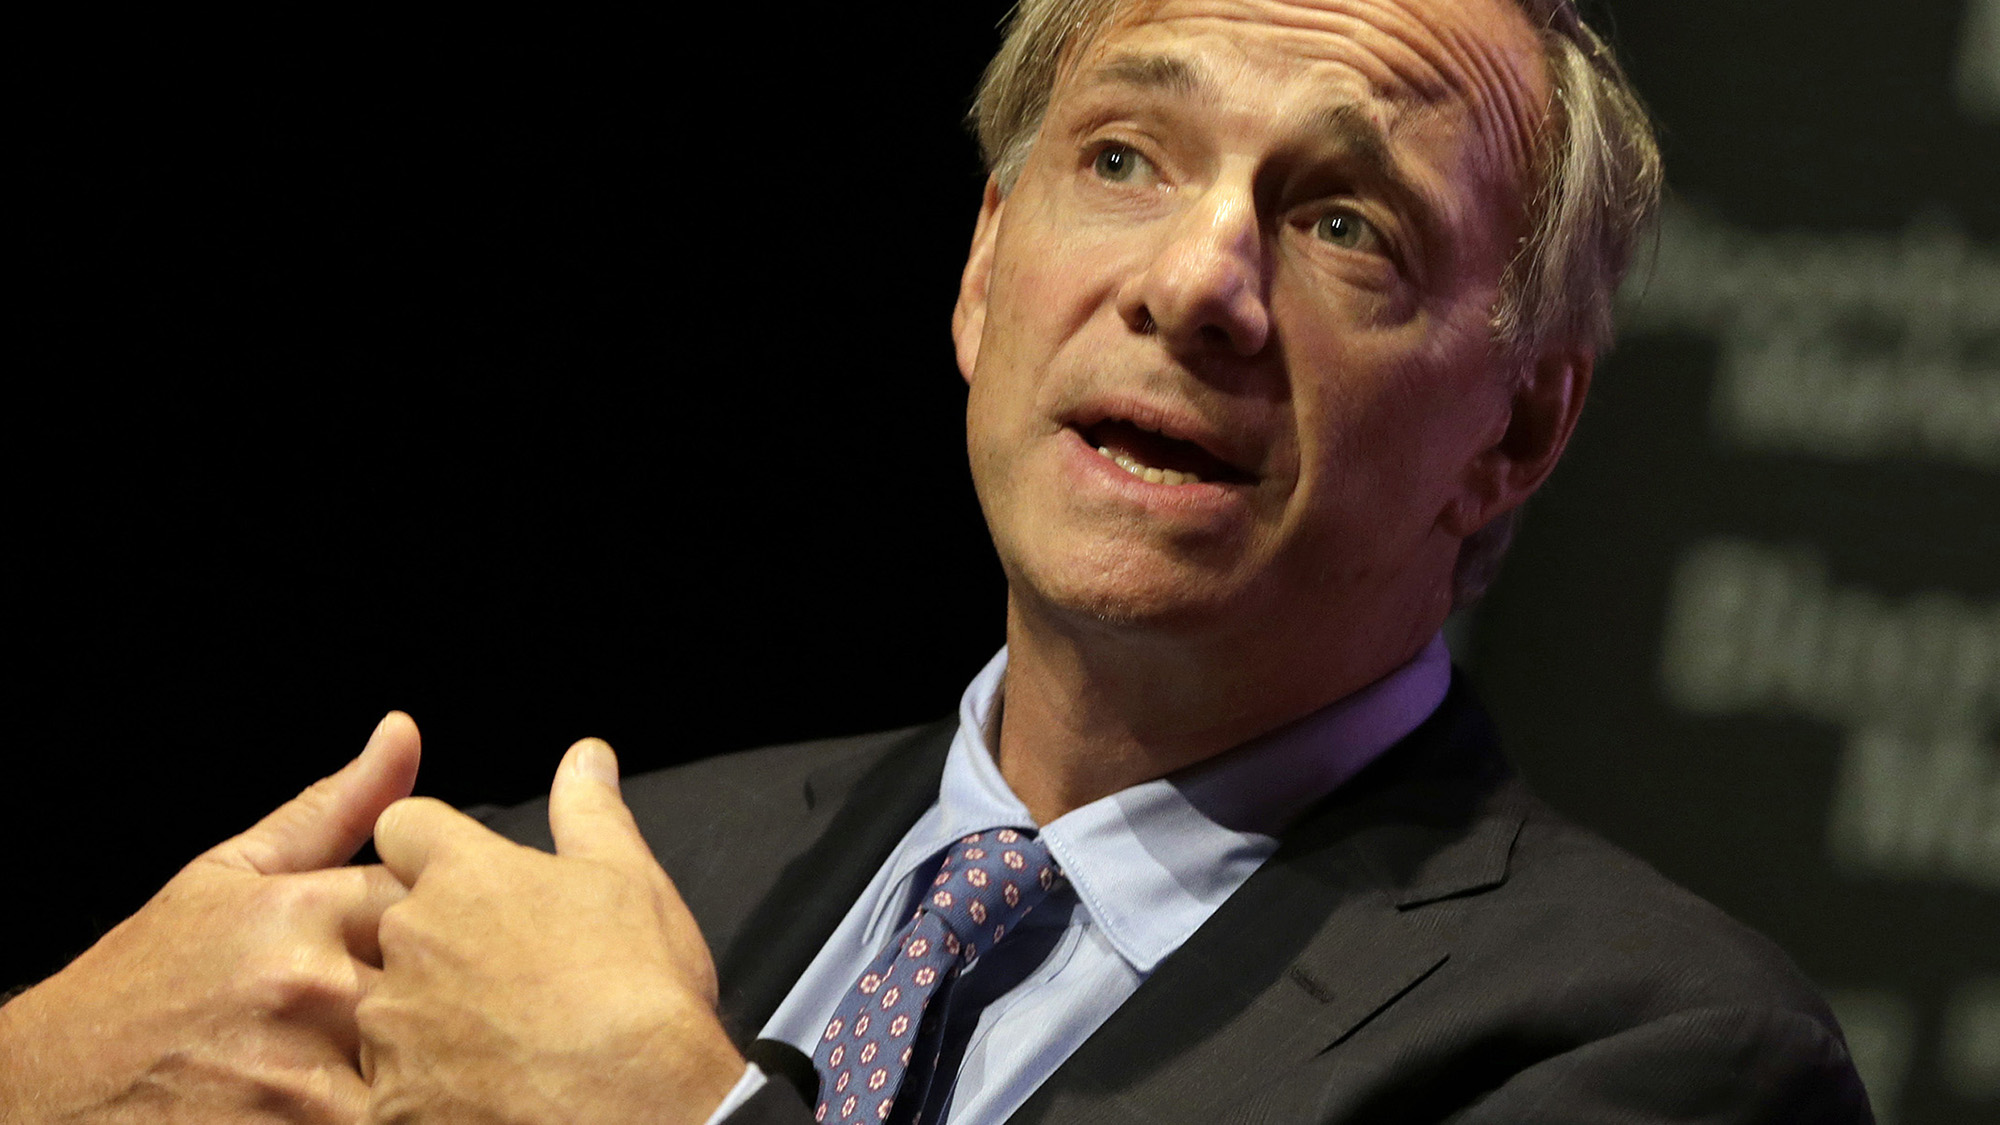 Ray Dalio Sours on Trump After Immigrant Ban, Joining Soros